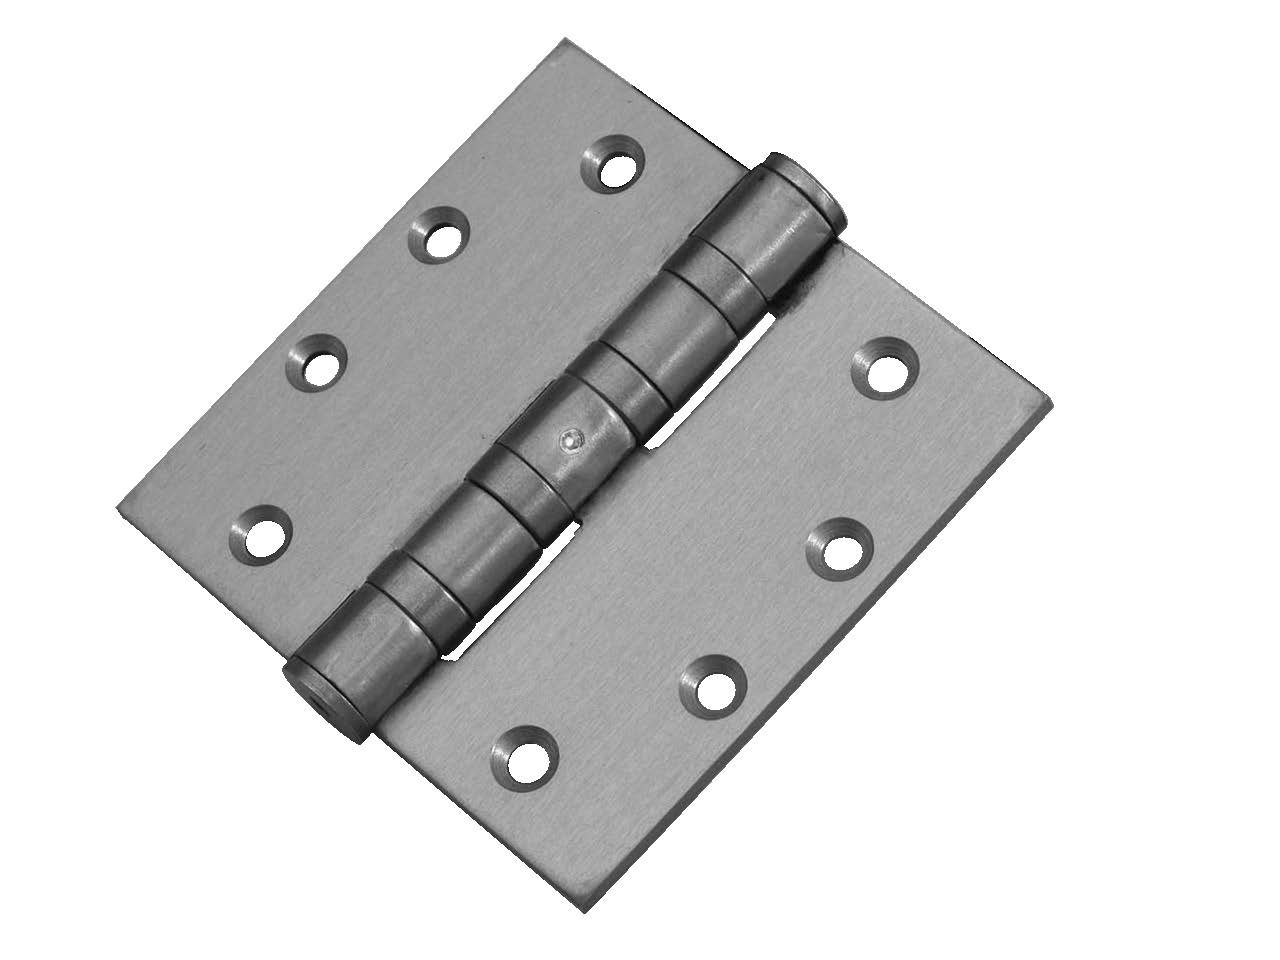 Don-Jo HWBB75045 0.190 Gauge Steel Full Mortise Ball Bearing Template Hinges with Non-Removable Pin, Polished Brass Plated, 5'' Width x 4-1/2'' Height (Pack of 24)